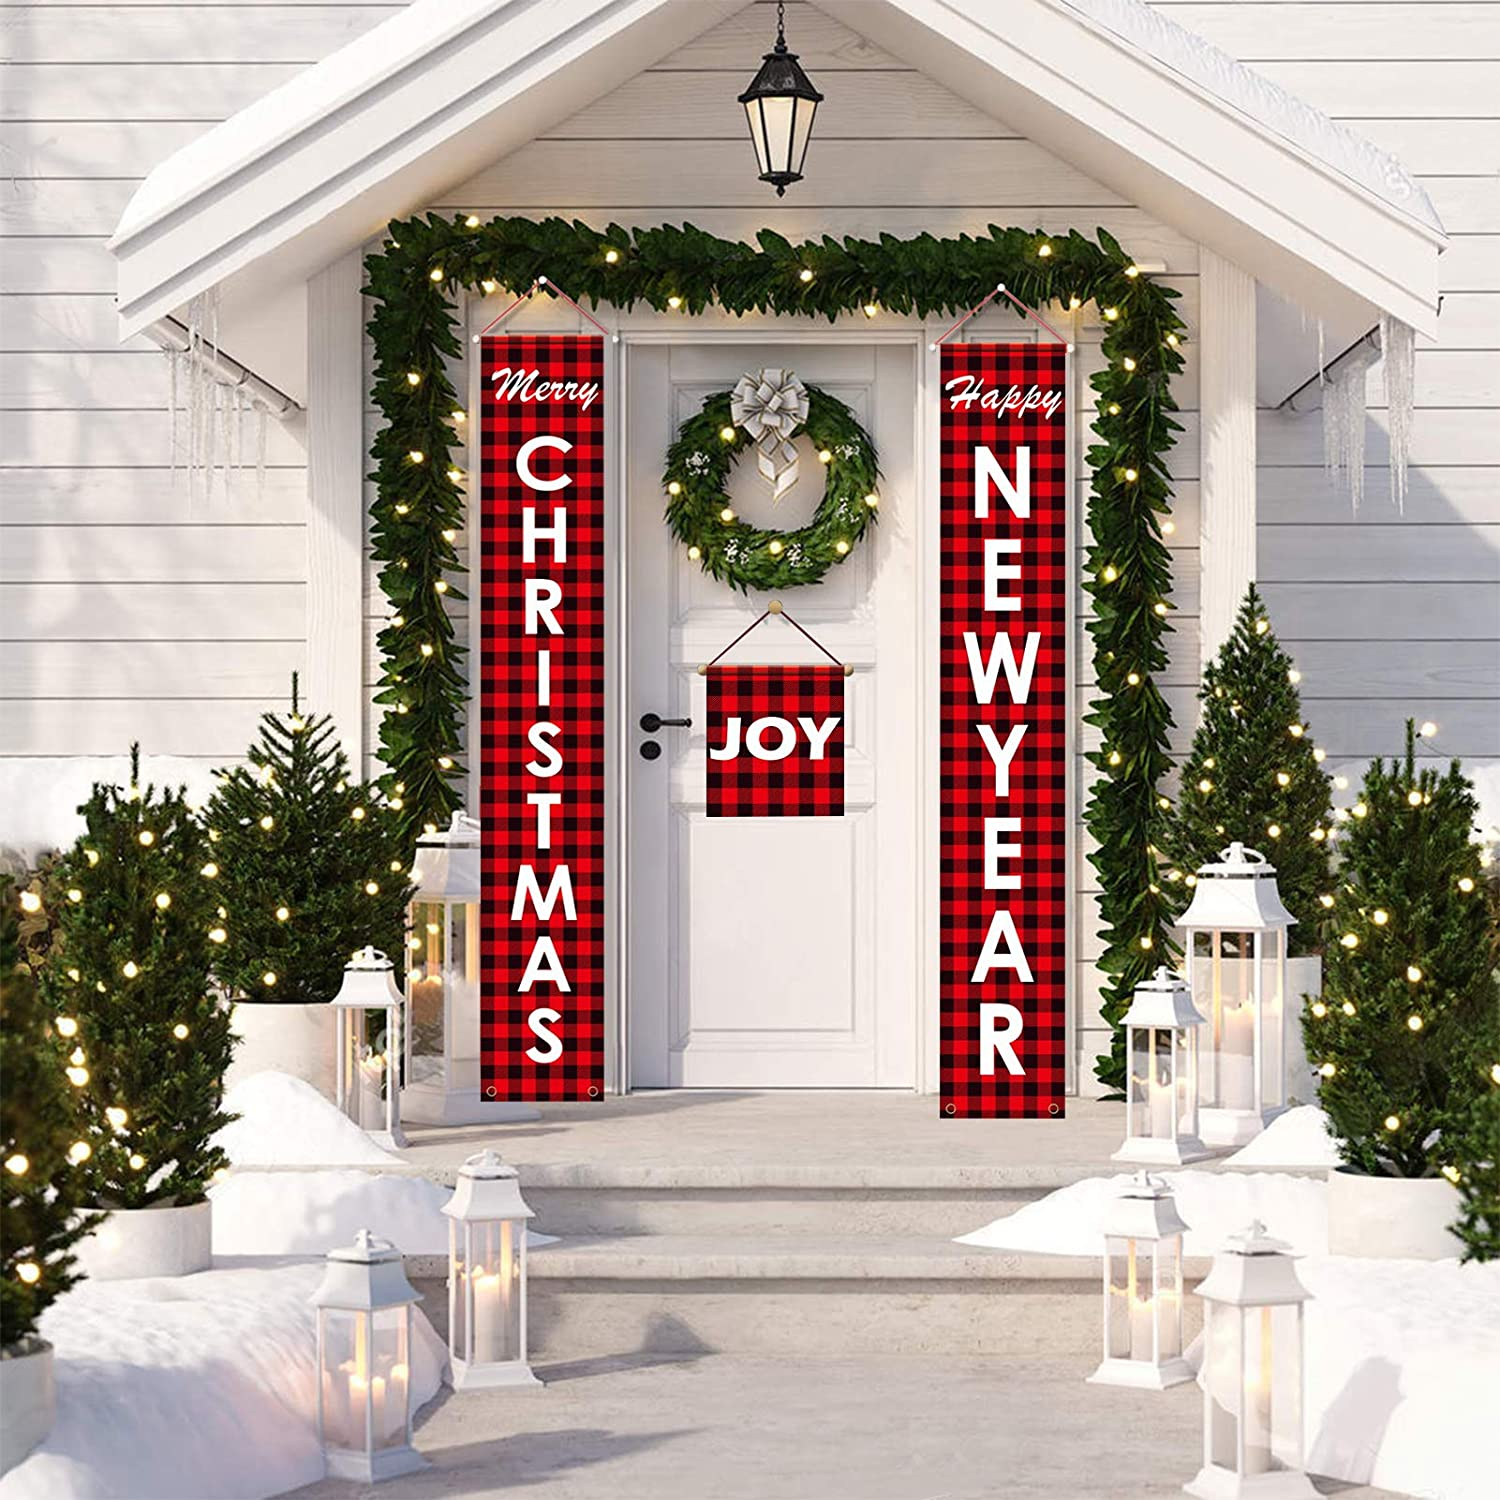 Tarklanda Christmas Porch Sign,Xmas Hanging Banners Porch Signs Decoration Door Porch Flag Banner for Front Door or Indoor Home Decor